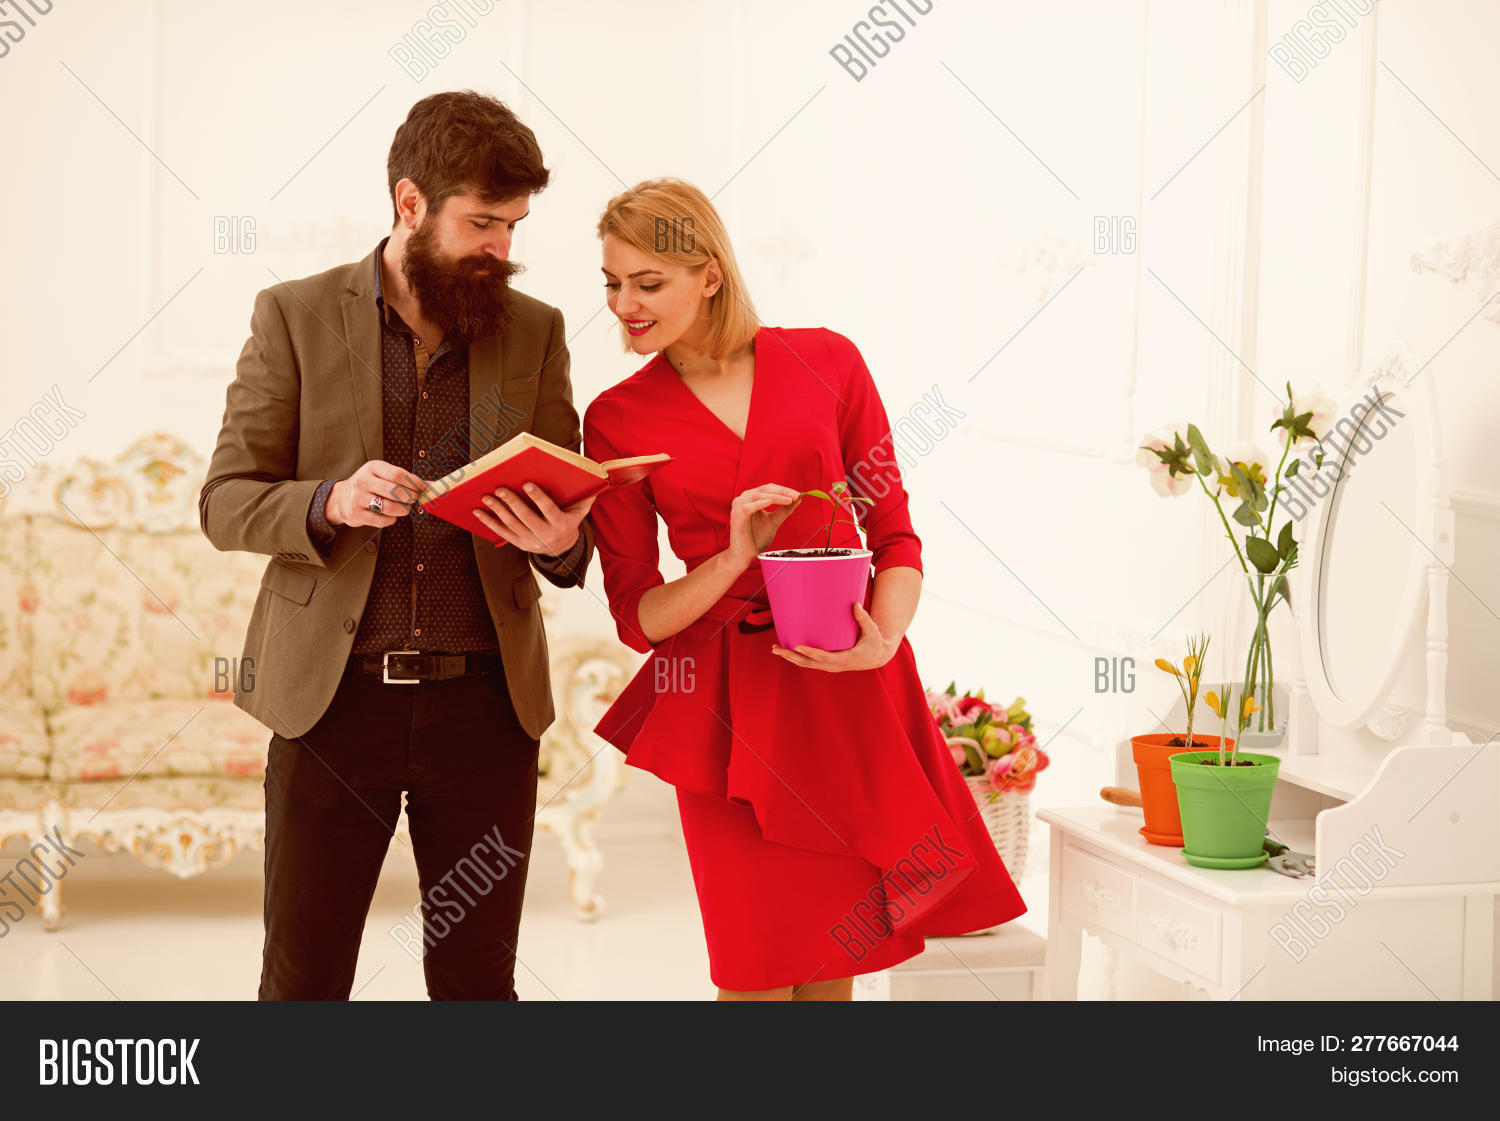 adorable,beard,bearded,beautiful,book,cute,desire,erotic,family,gardening,girl,grow,growing,hipster,knowledge,library,man,plants,pretty,read,seed,sensual,sexi,sexy,woman